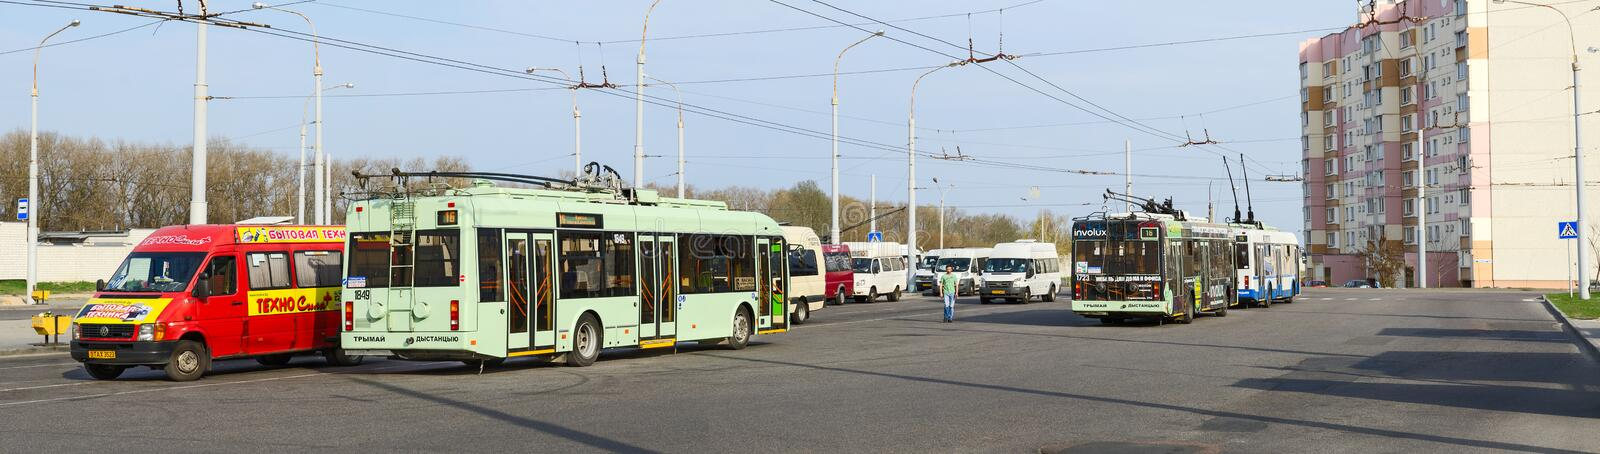 Trolley buses and taxis at final stop, Gomel, Belarus. GOMEL, BELARUS - APRIL 10, 2016: Trolley buses and taxis at the final stop District Klenkovsky, Gomel royalty free stock photo